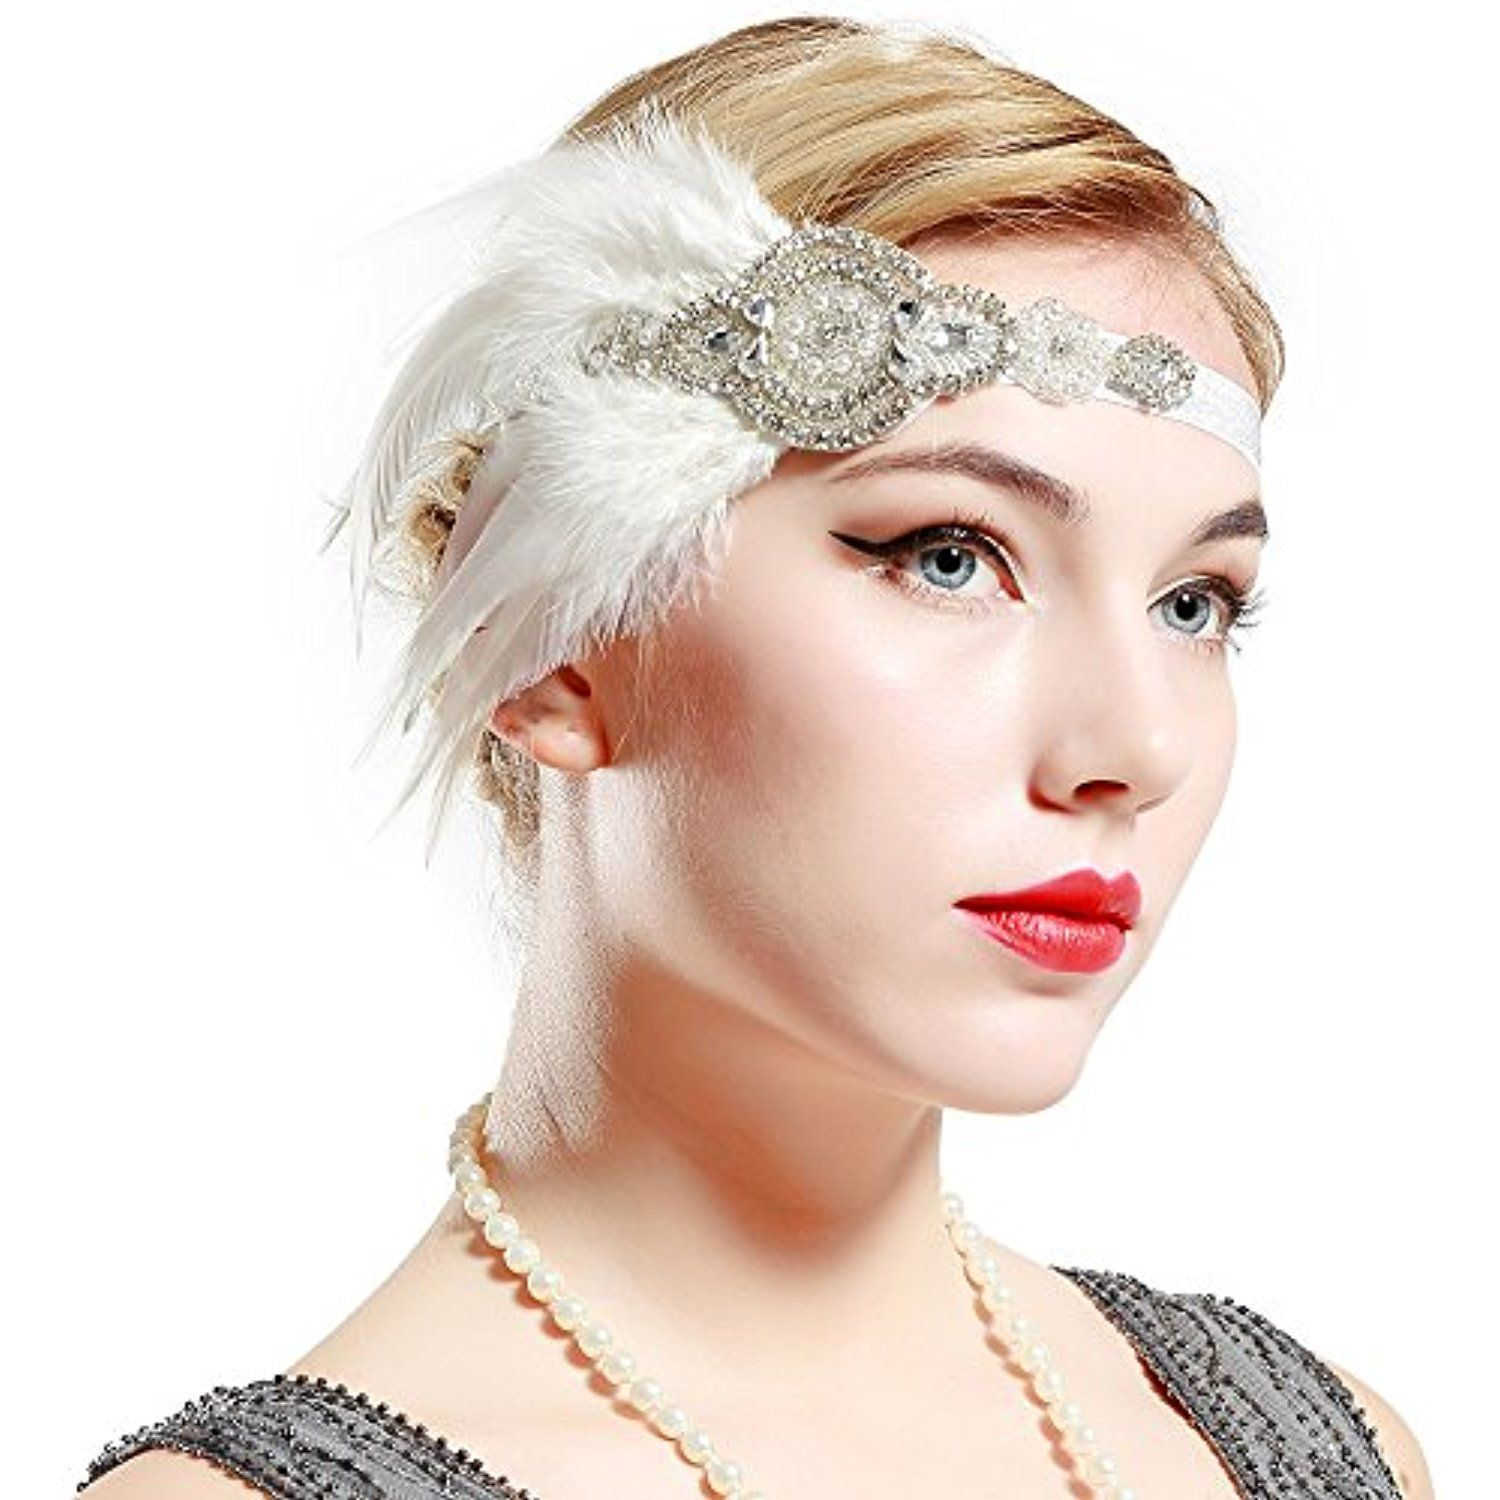 Vintage 1920s Flapper Headband Roaring 20s Great Gatsby Headpiece with Peacock Feather 1920s Flapper Gatsby Hair